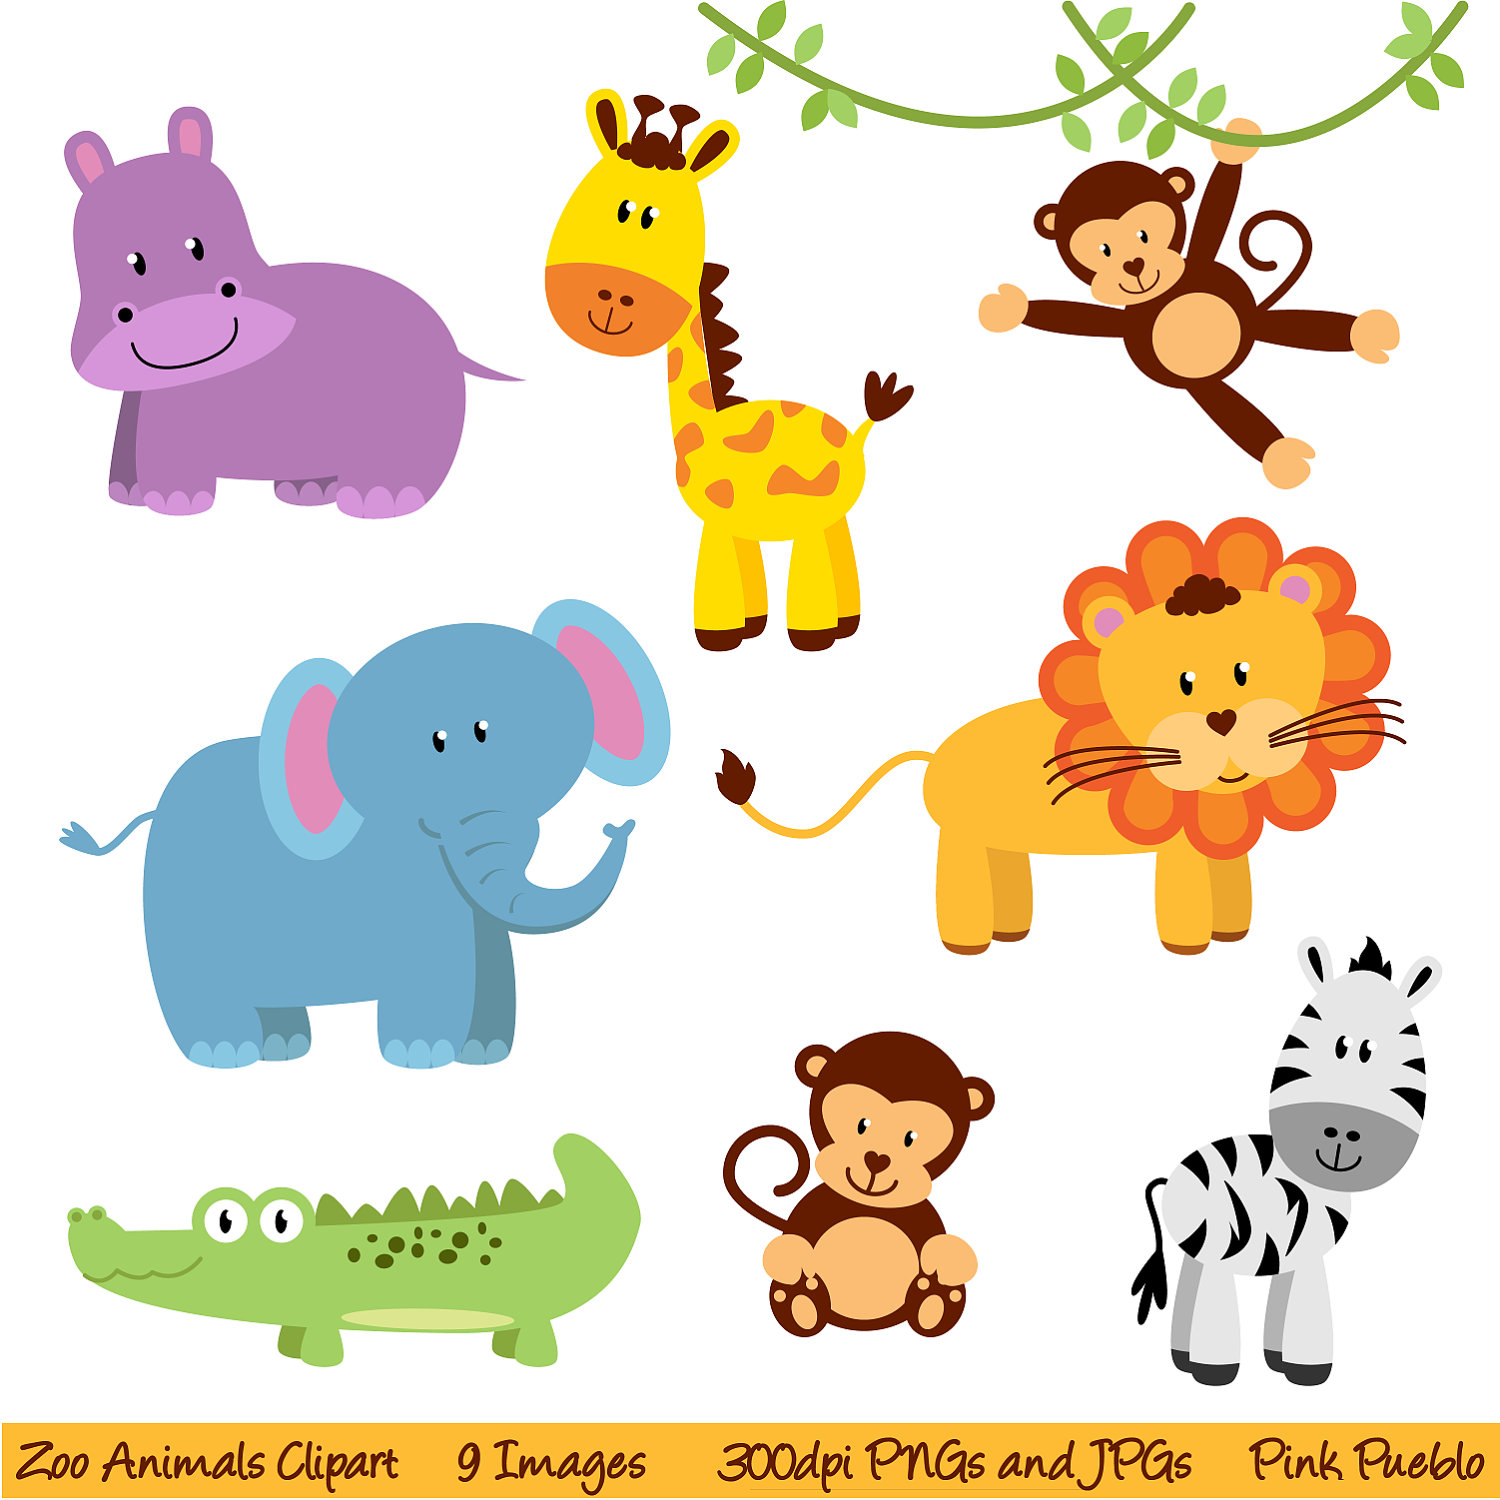 vector transparent download Animal clipart free. Images of animals download